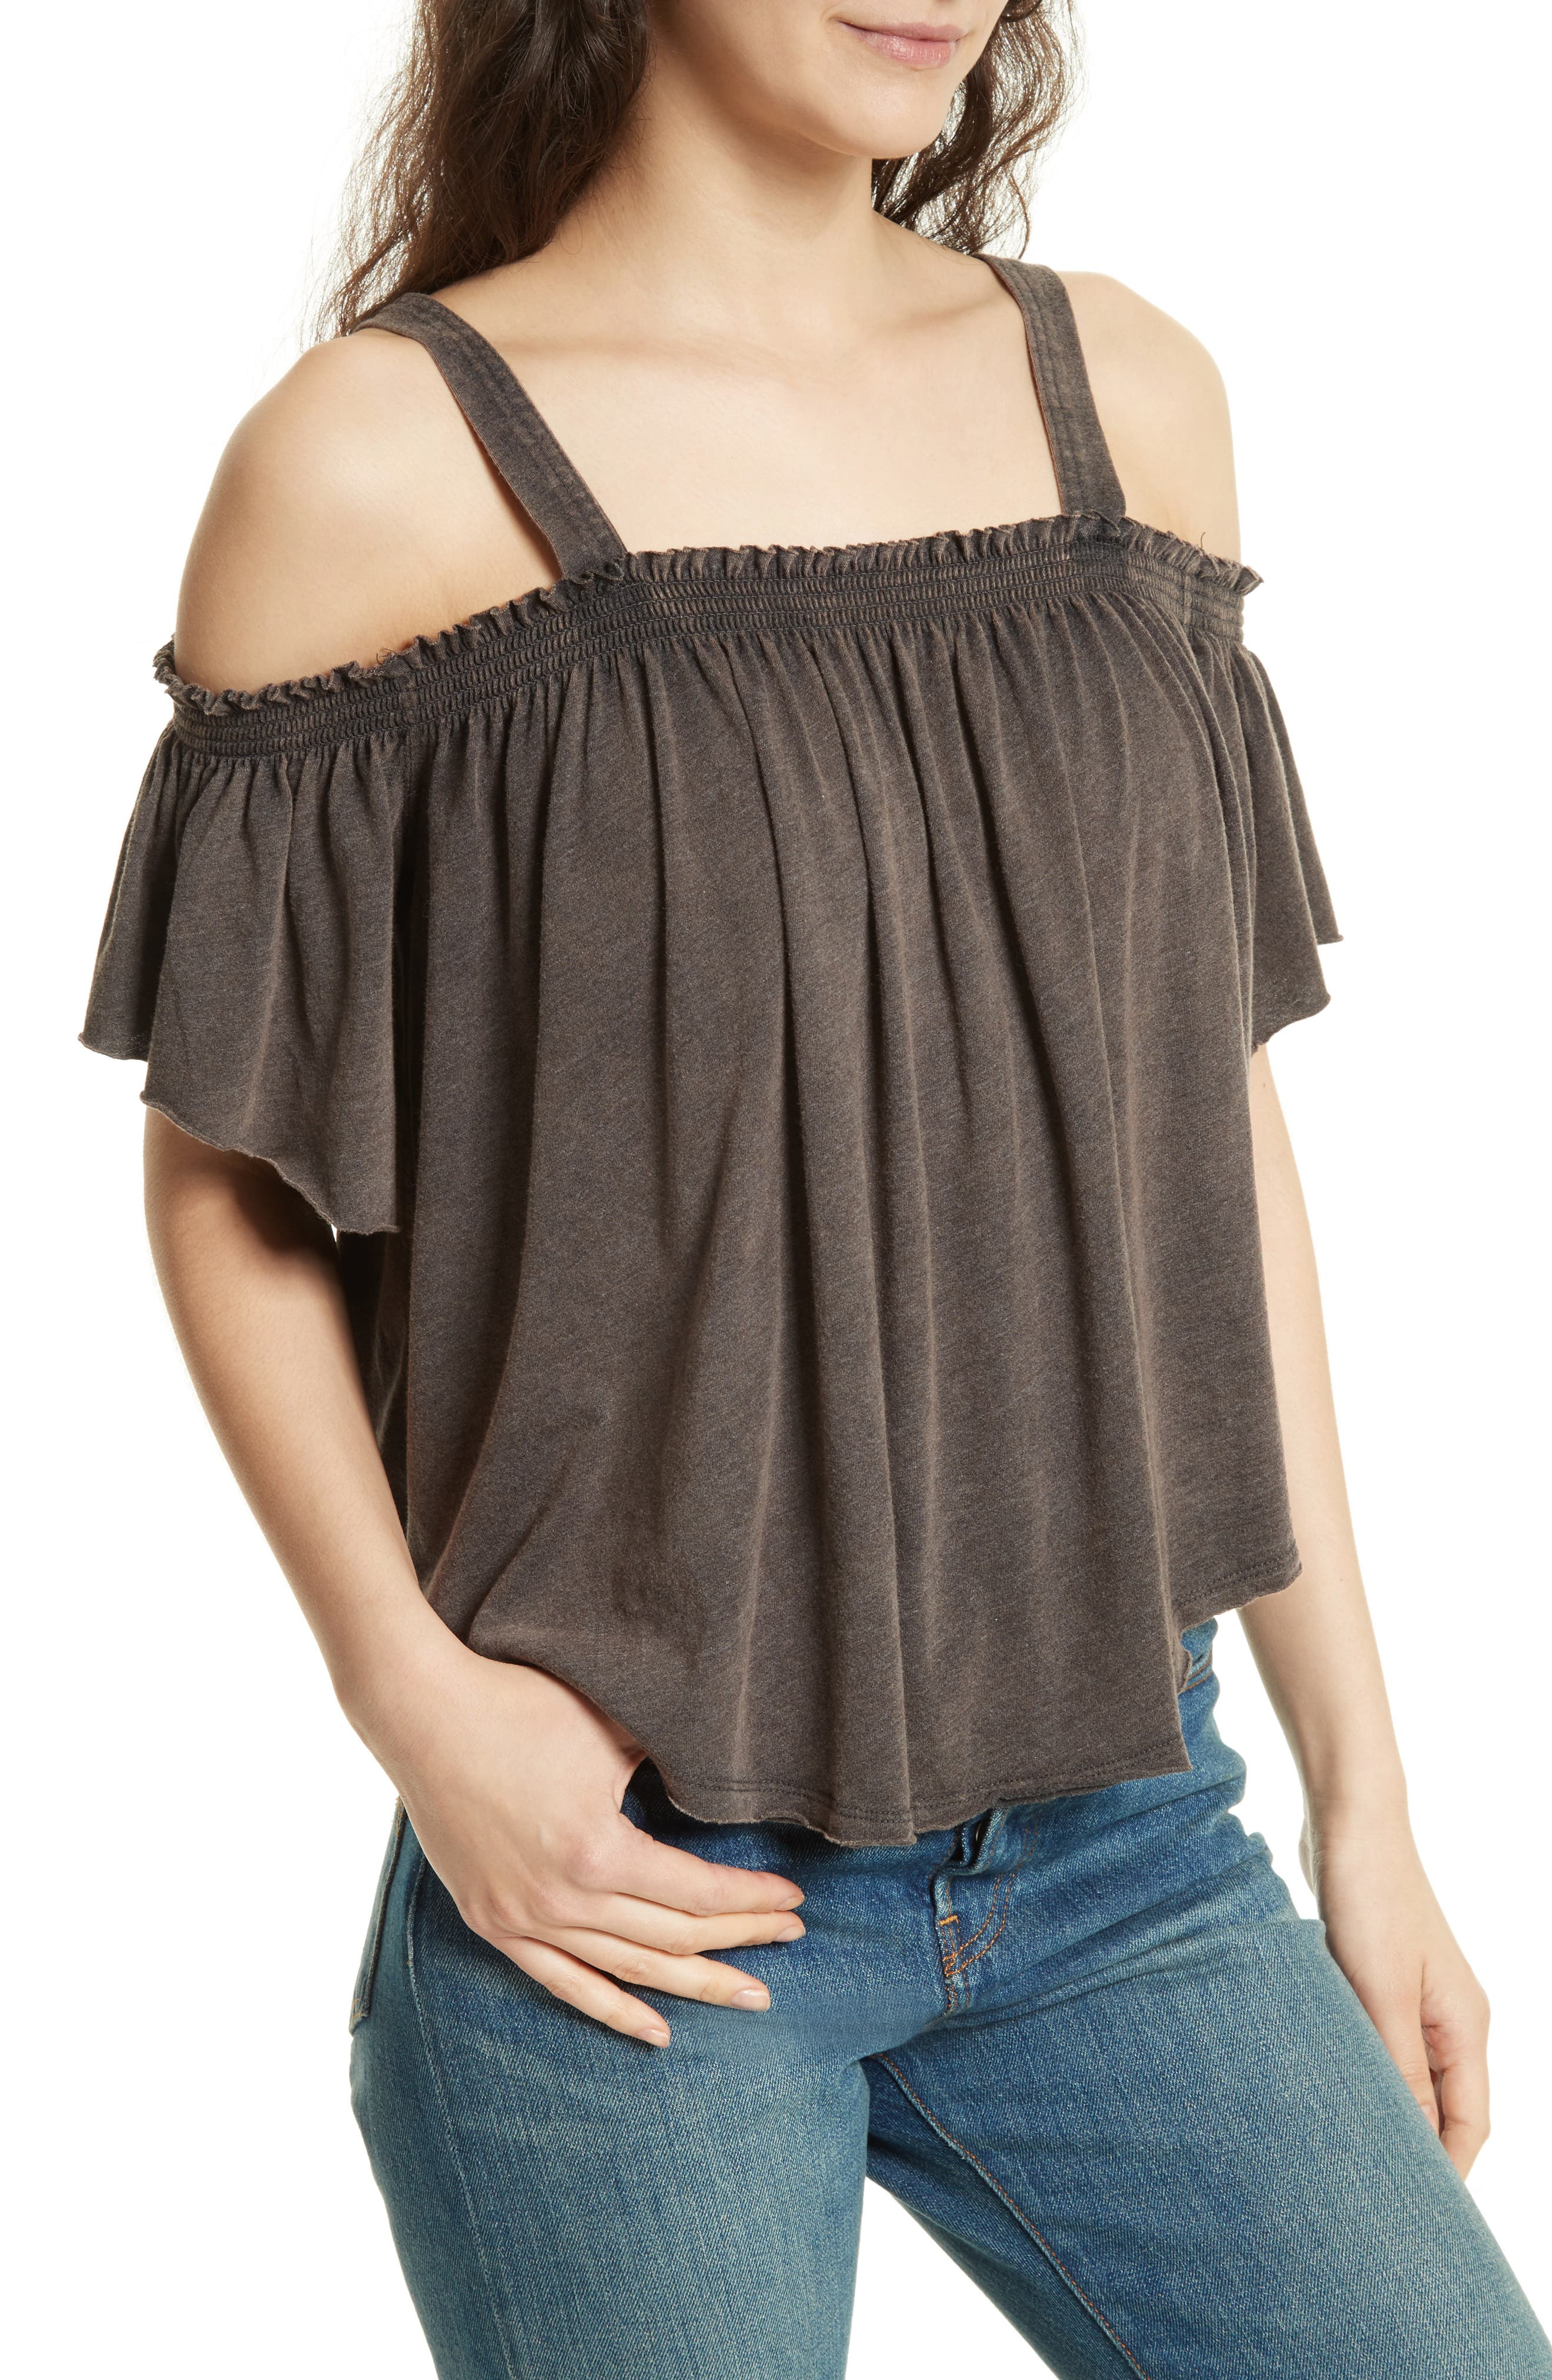 FREE PEOPLE,                             Darling Off the Shoulder Top,                             Alternate thumbnail 4, color,                             001